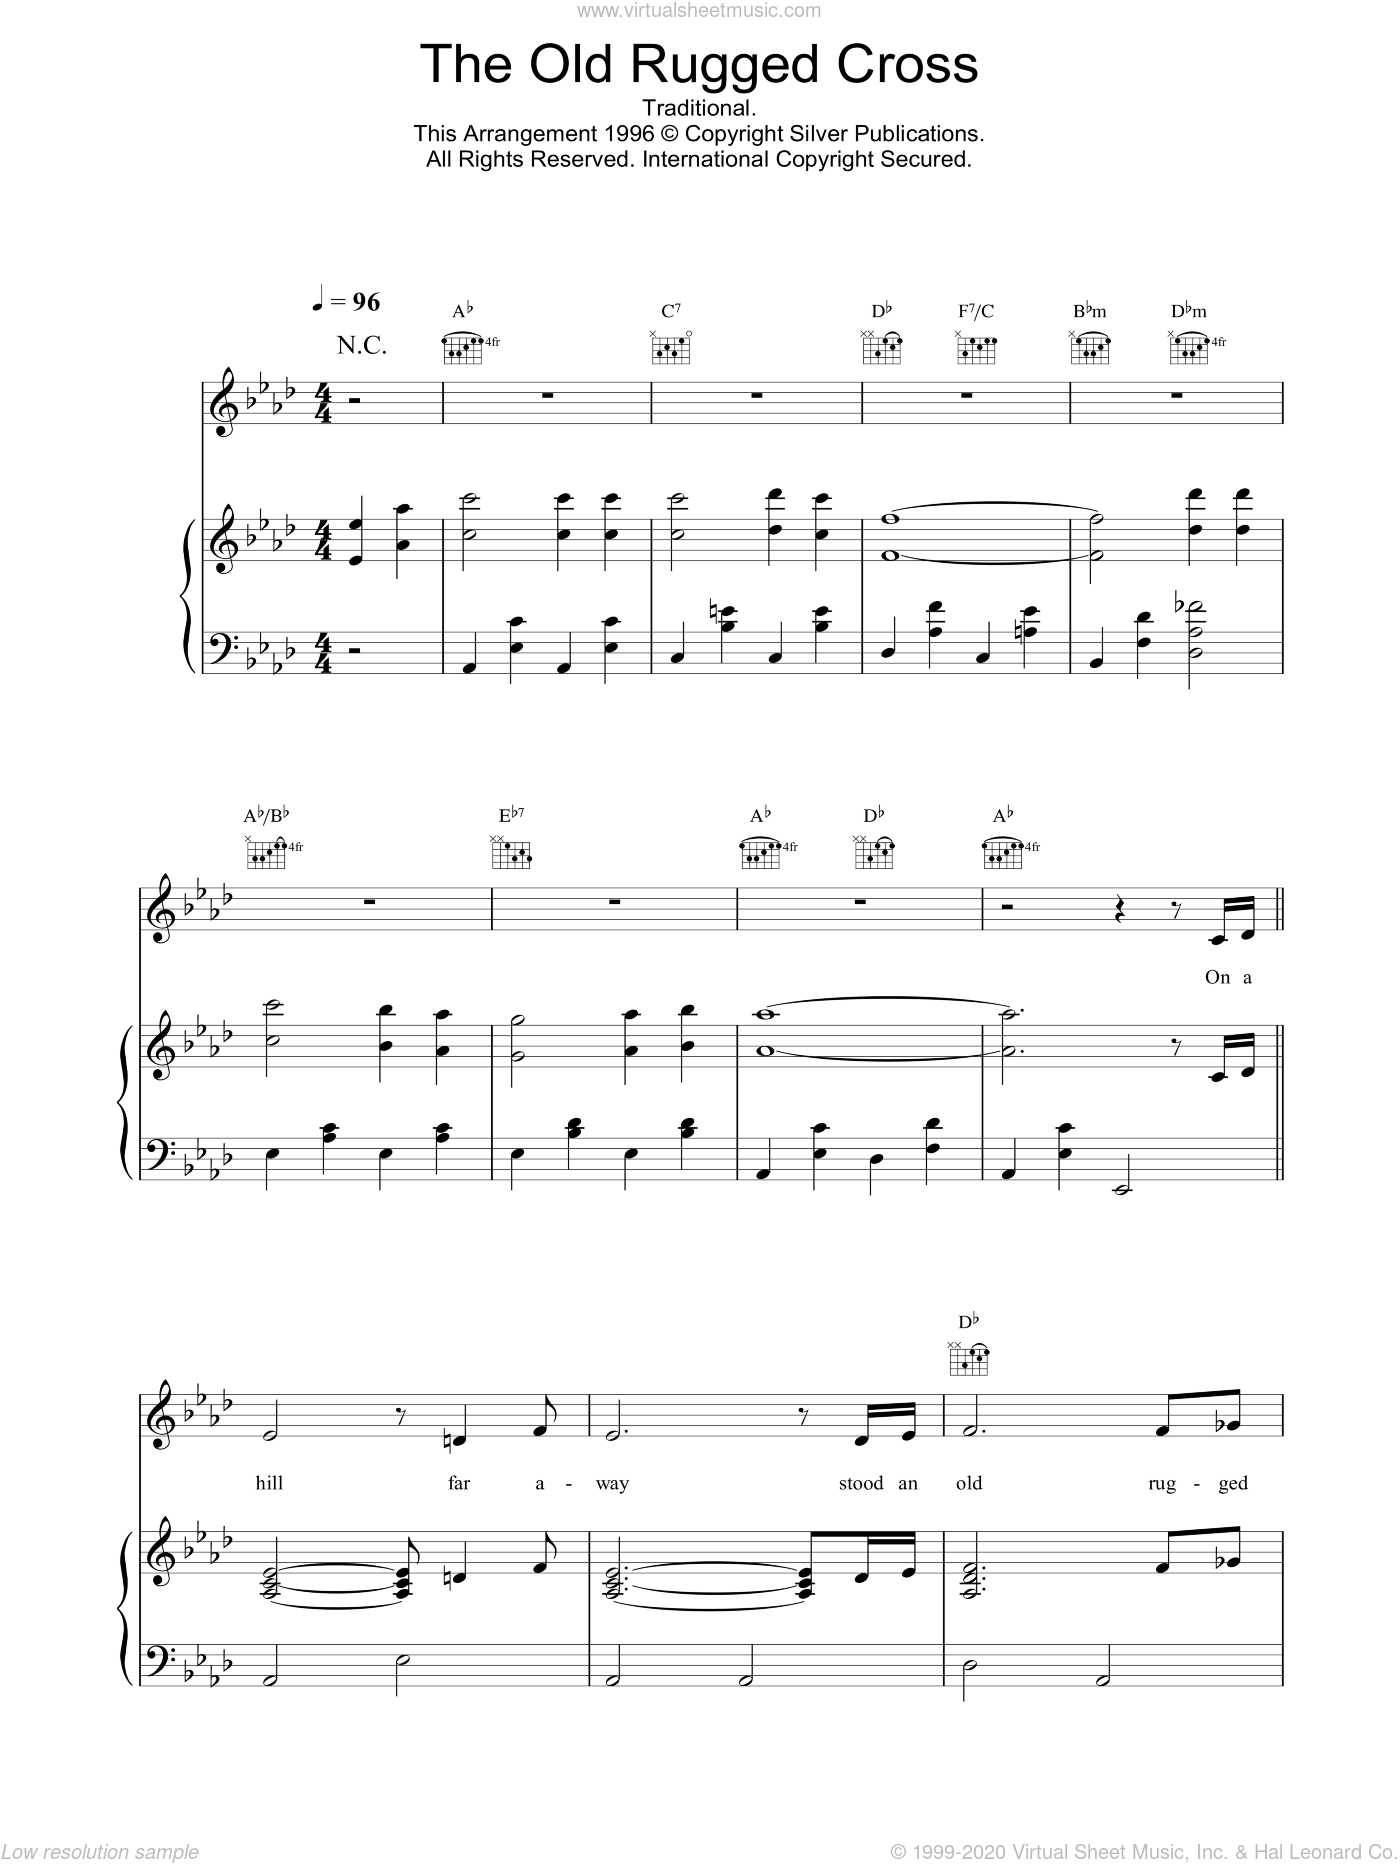 The Old Rugged Cross sheet music for voice, piano or guitar by Daniel O'Donnell. Score Image Preview.